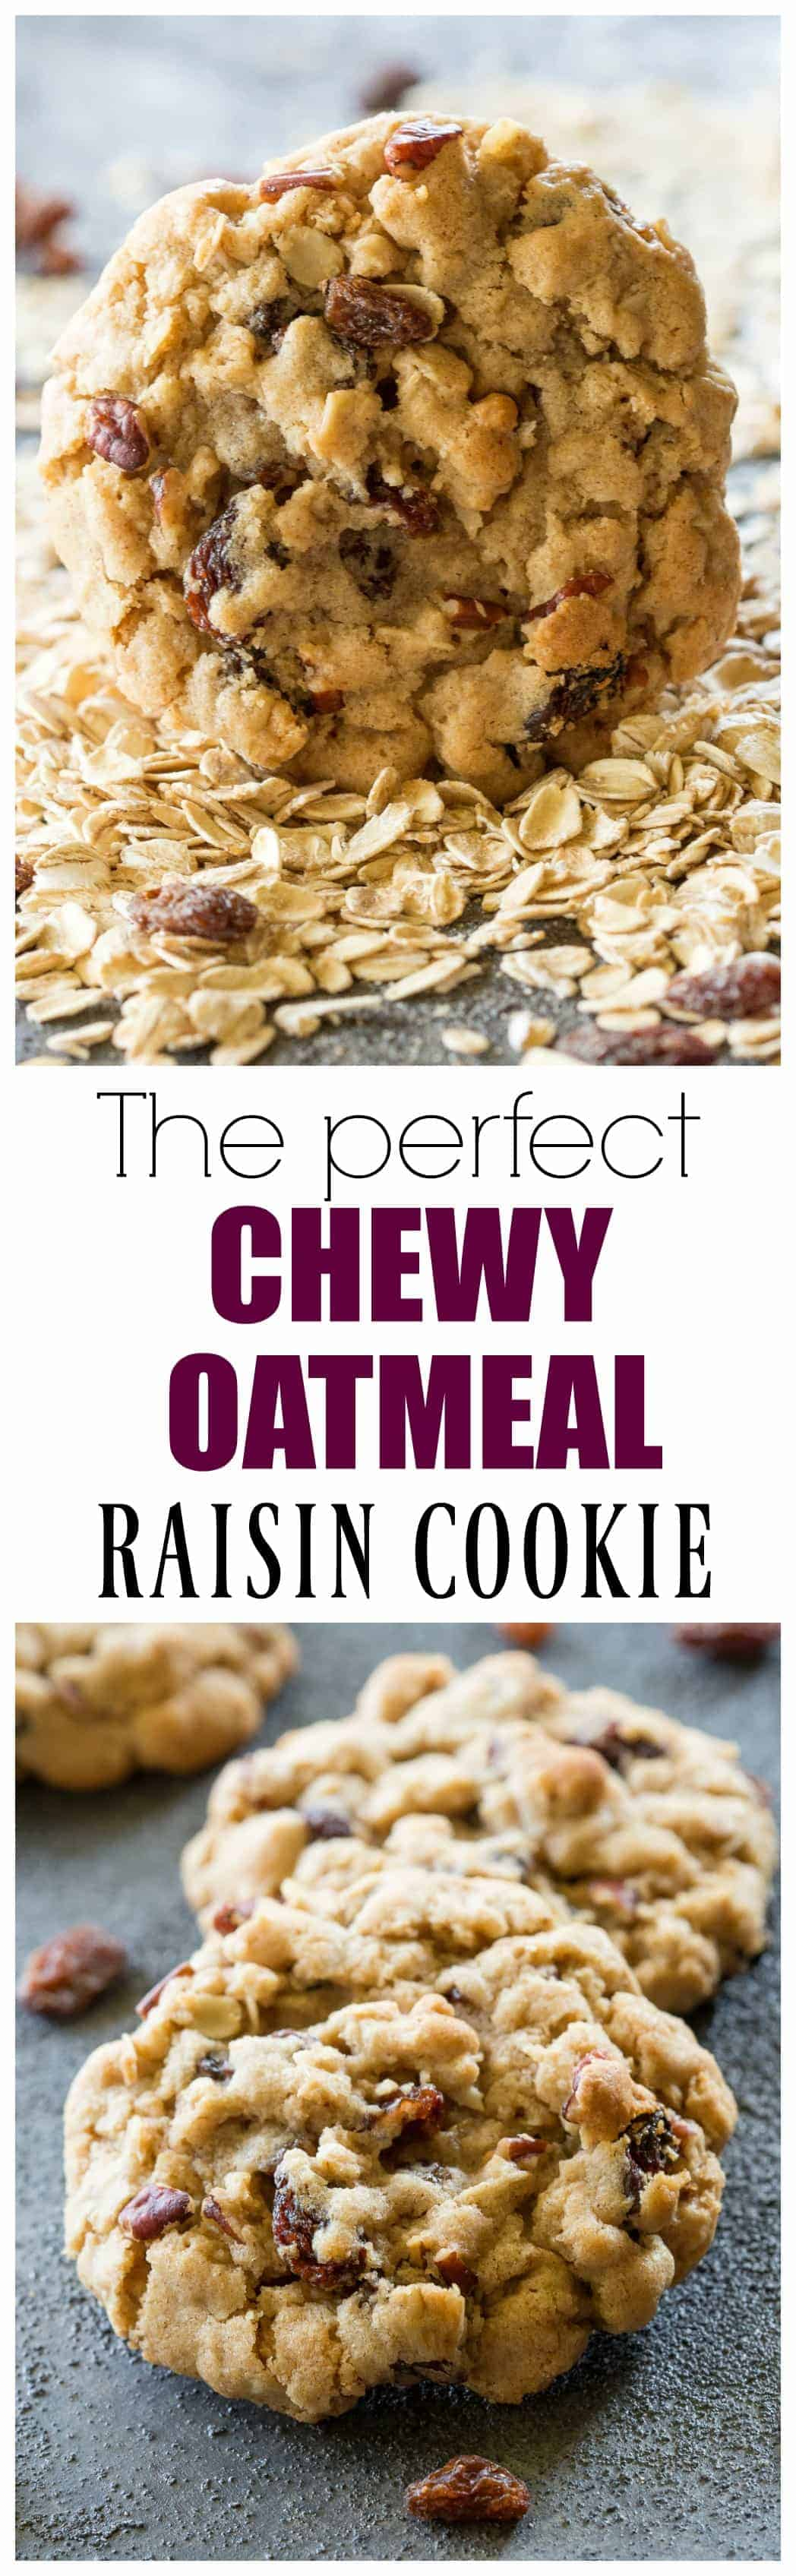 The Best Chewy Oatmeal Raisin Cookies - perfect texture, full of oats, raisins, and nuts. #chewy #oatmeal #raisin #cookie #recipe #dessert #thick